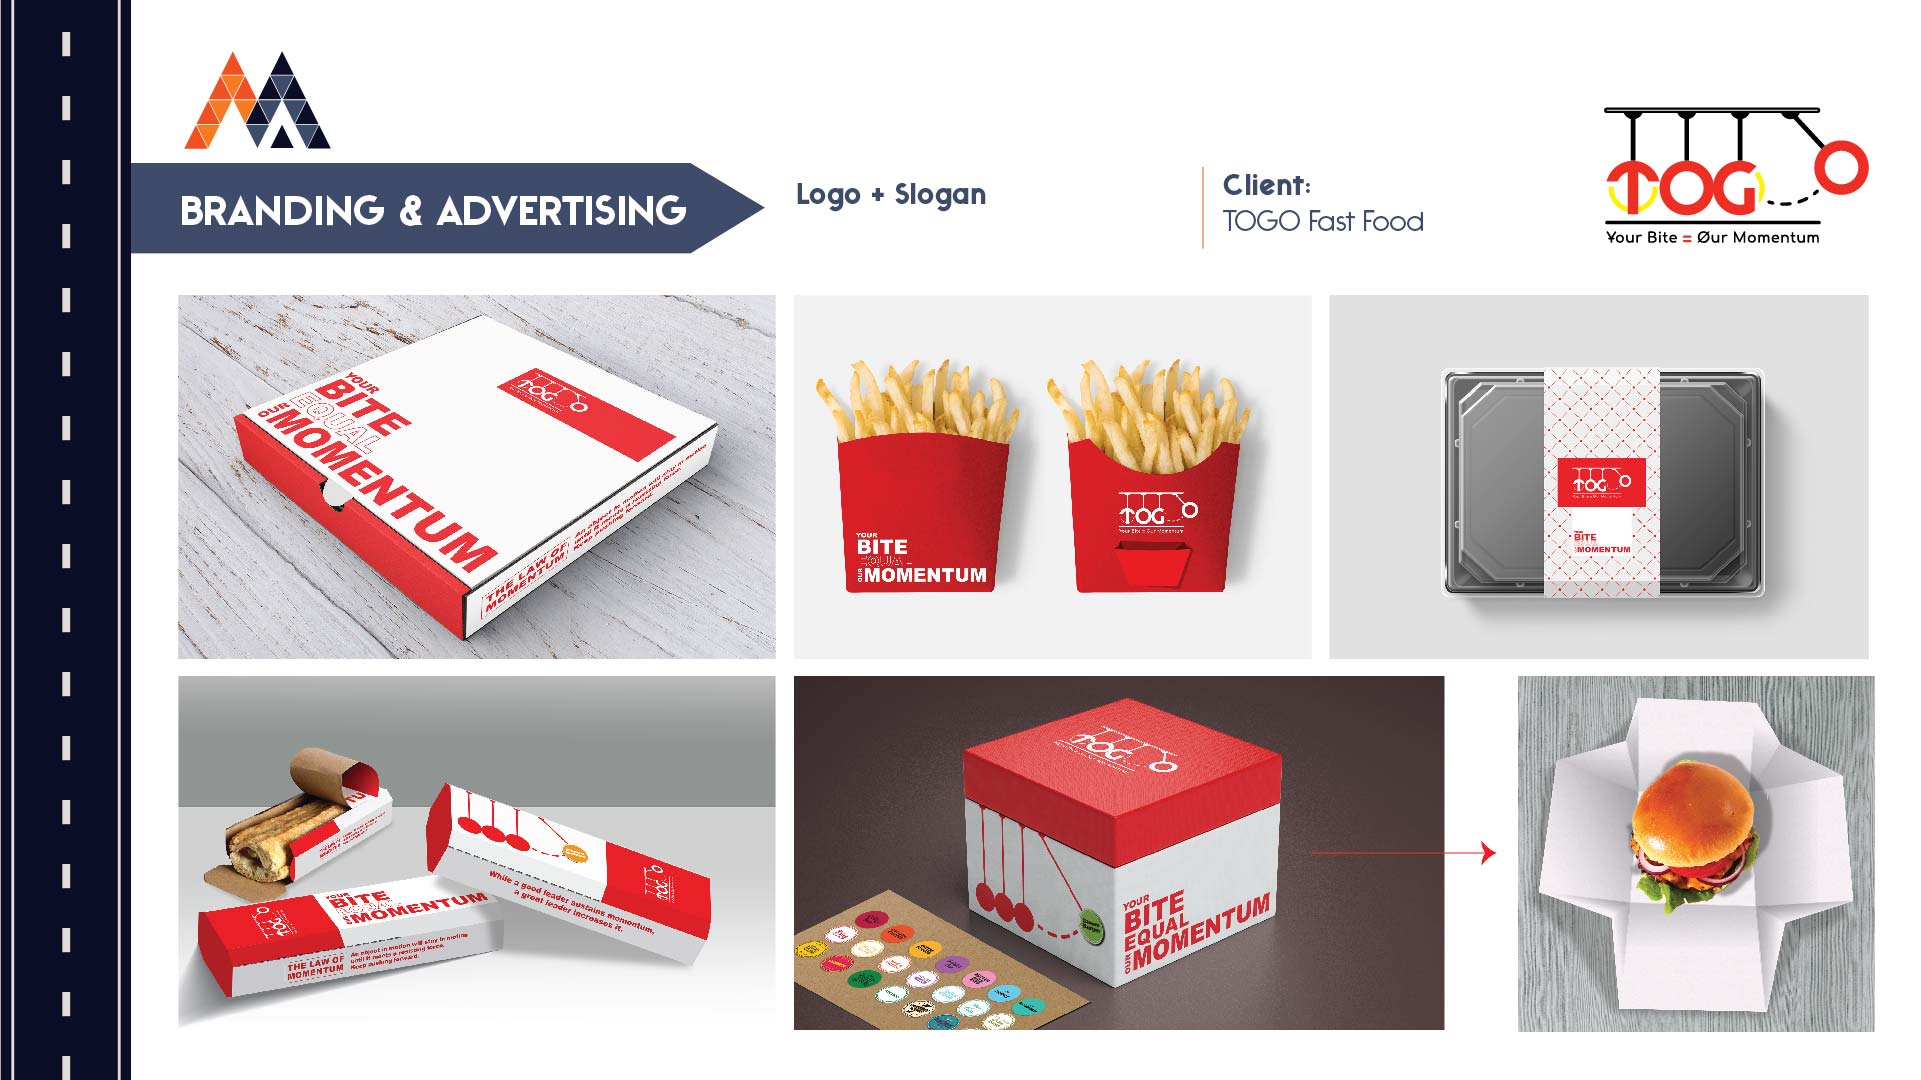 Packaging - TOGO Resto